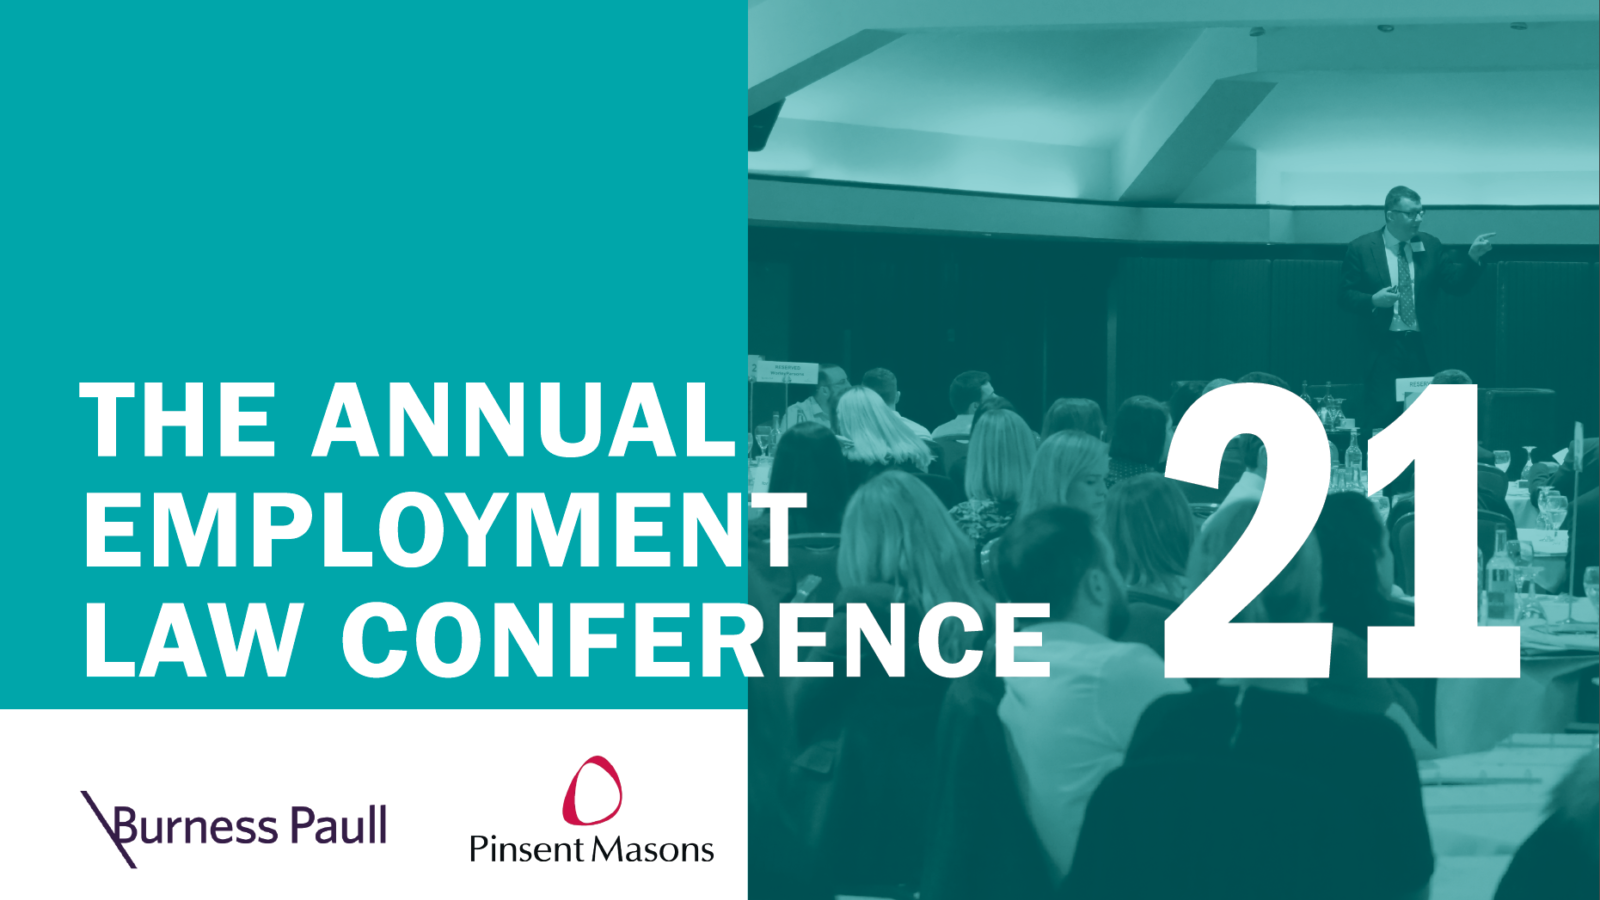 Annual Employment Law Conference 2021: The must-attend annual event in partnership with Burness Paull LLP and Pinsent Masons LLP